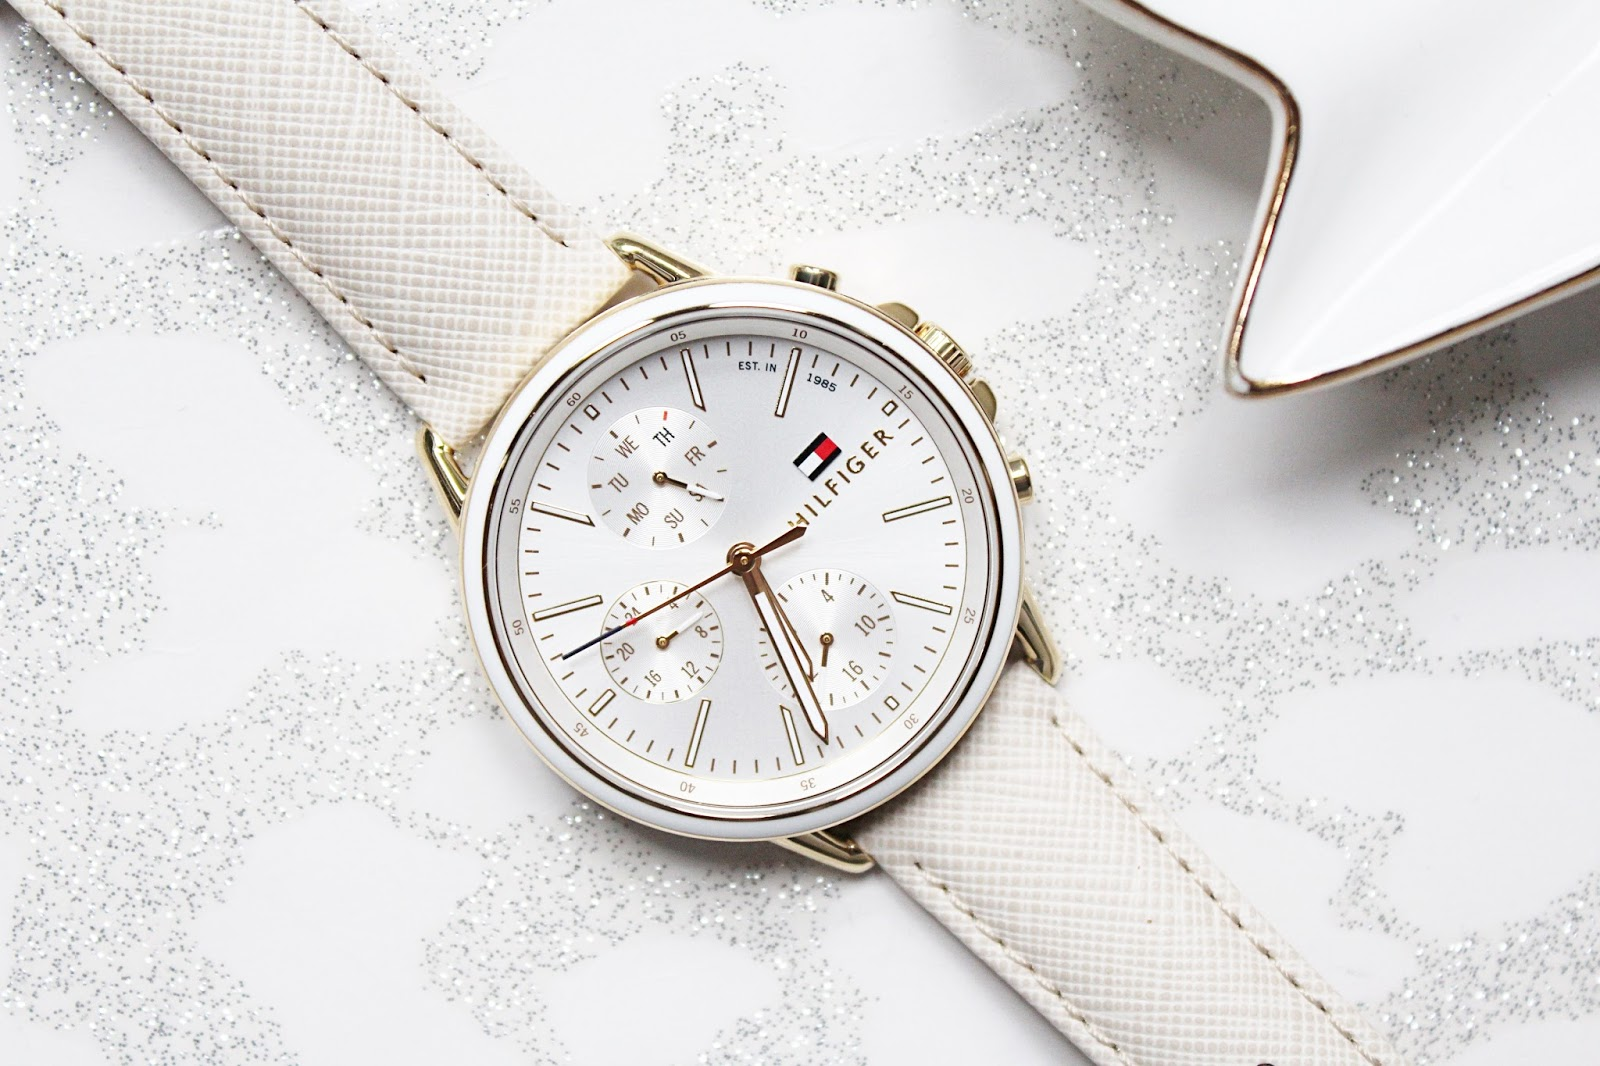 Tommy Hilfiger Carly Watch Review